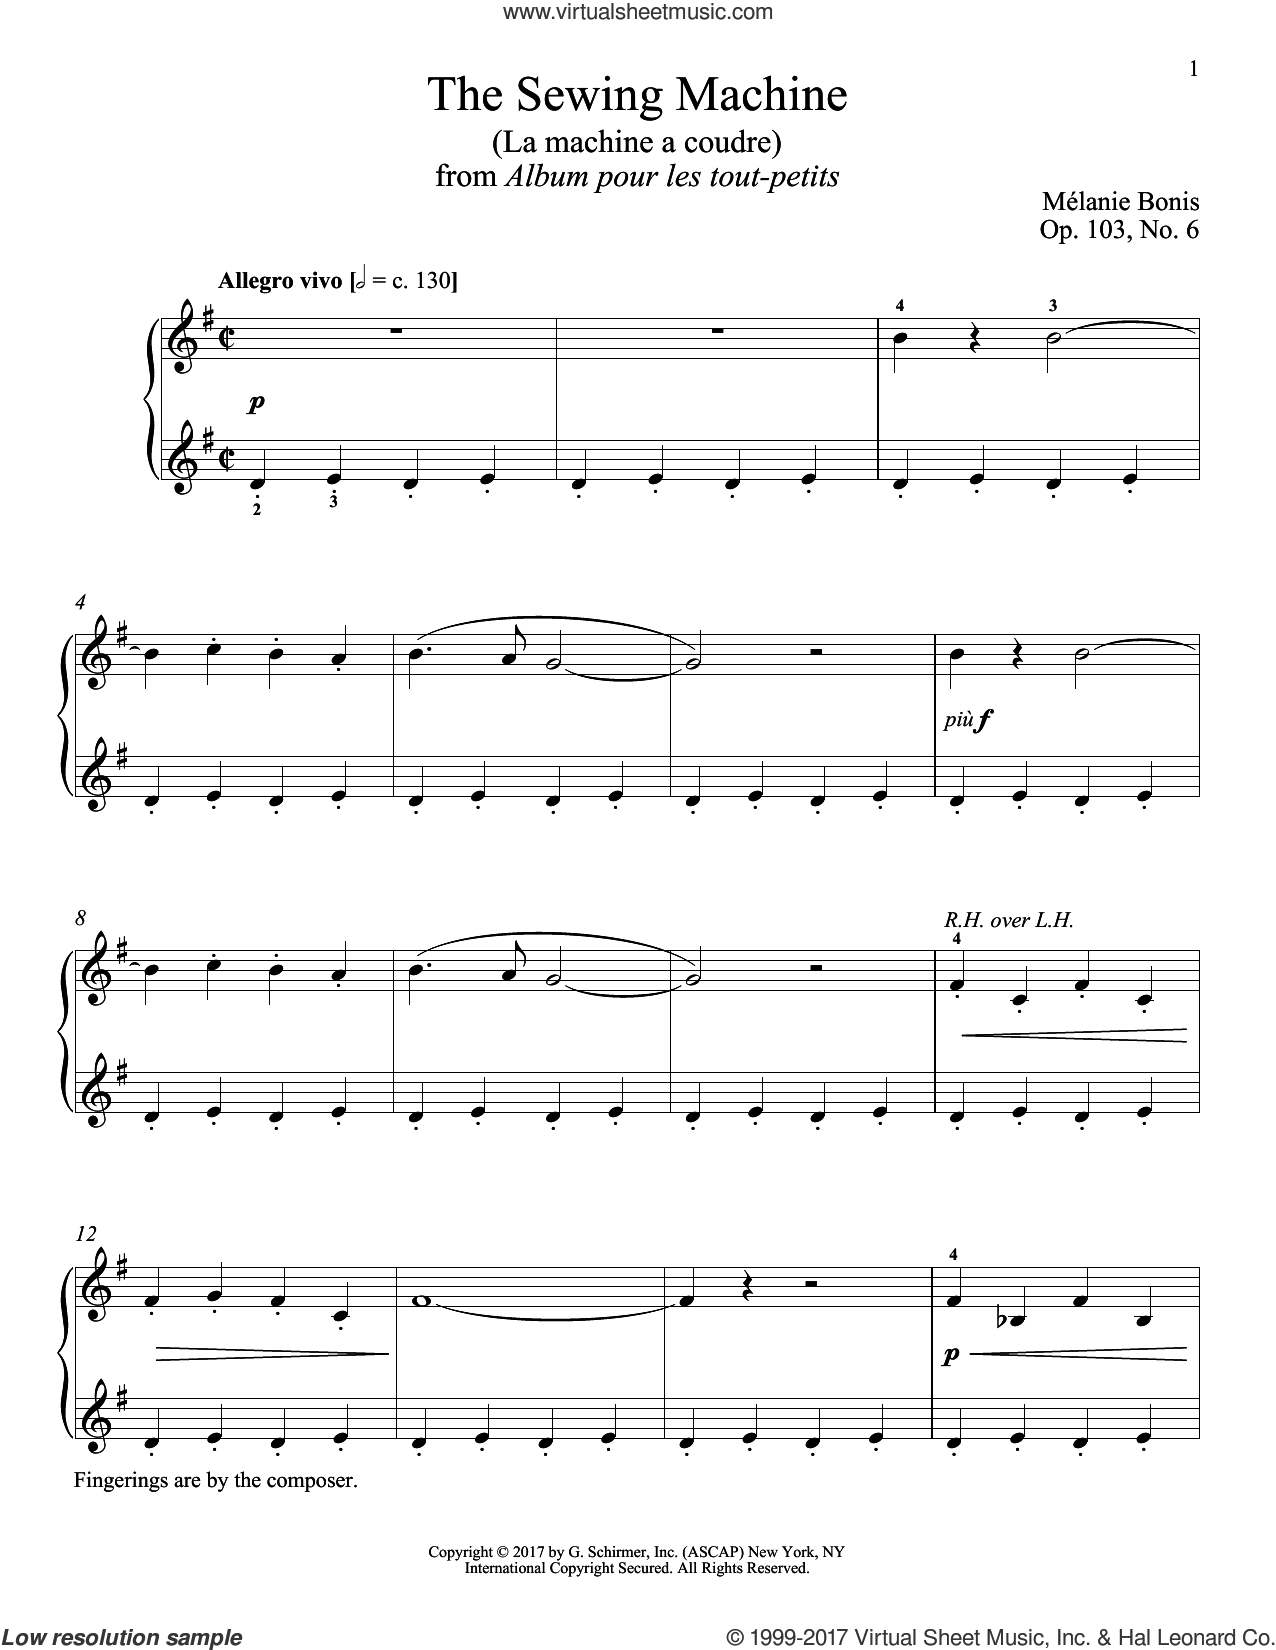 The Sewing Machine (La machine a courde) sheet music for piano solo by Melanie Bonis and Richard Walters. Score Image Preview.